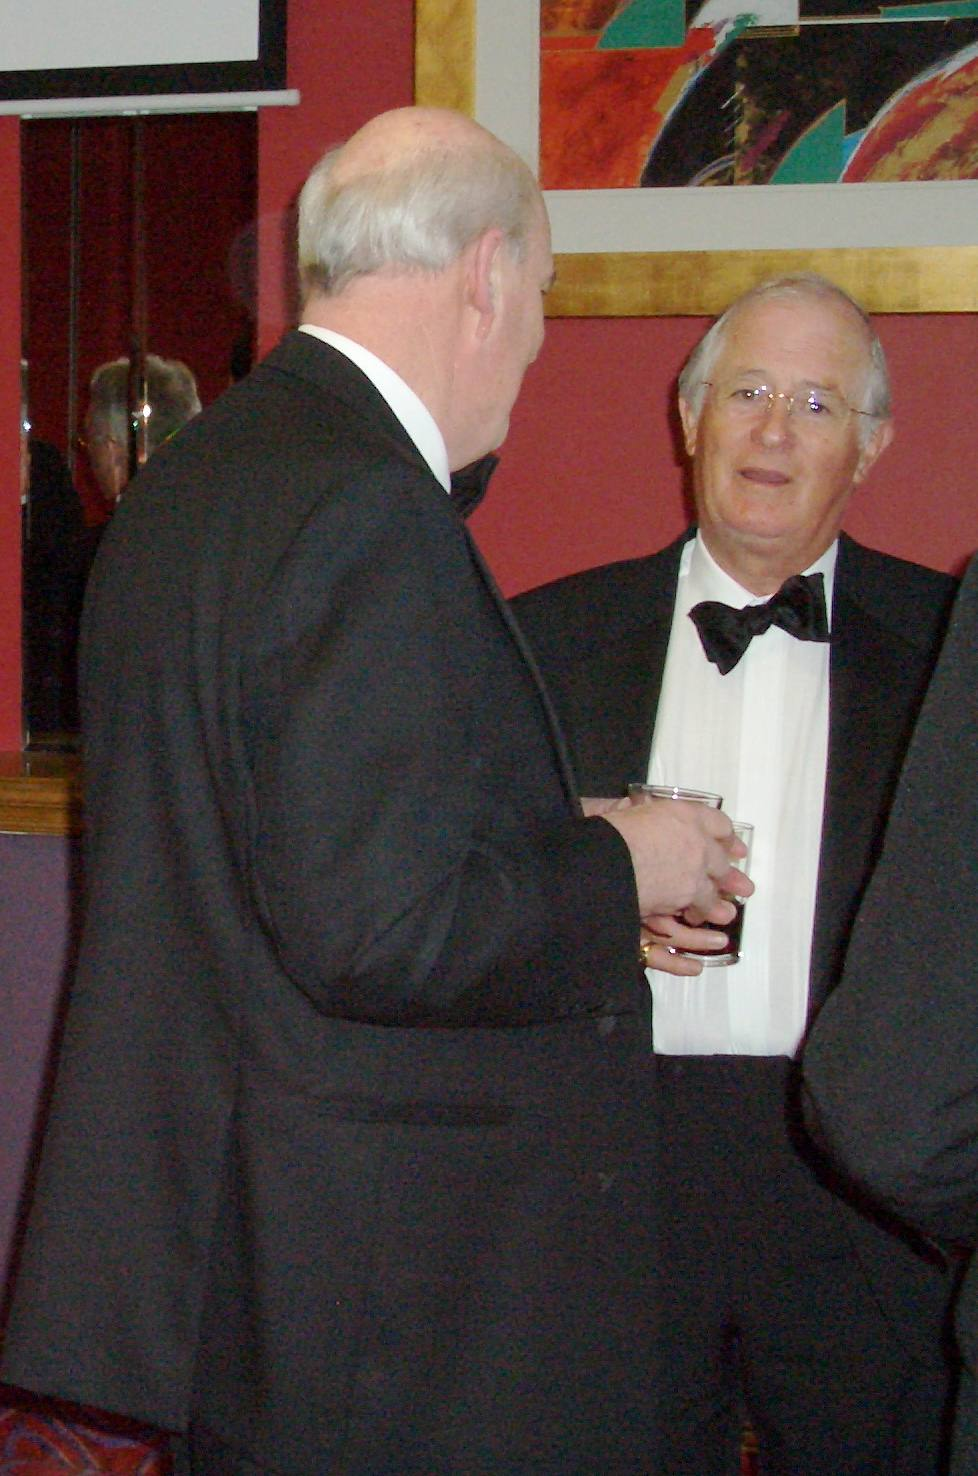 Charter Night 2008 - His Excellency in conversation with Rotarian Brian Partington